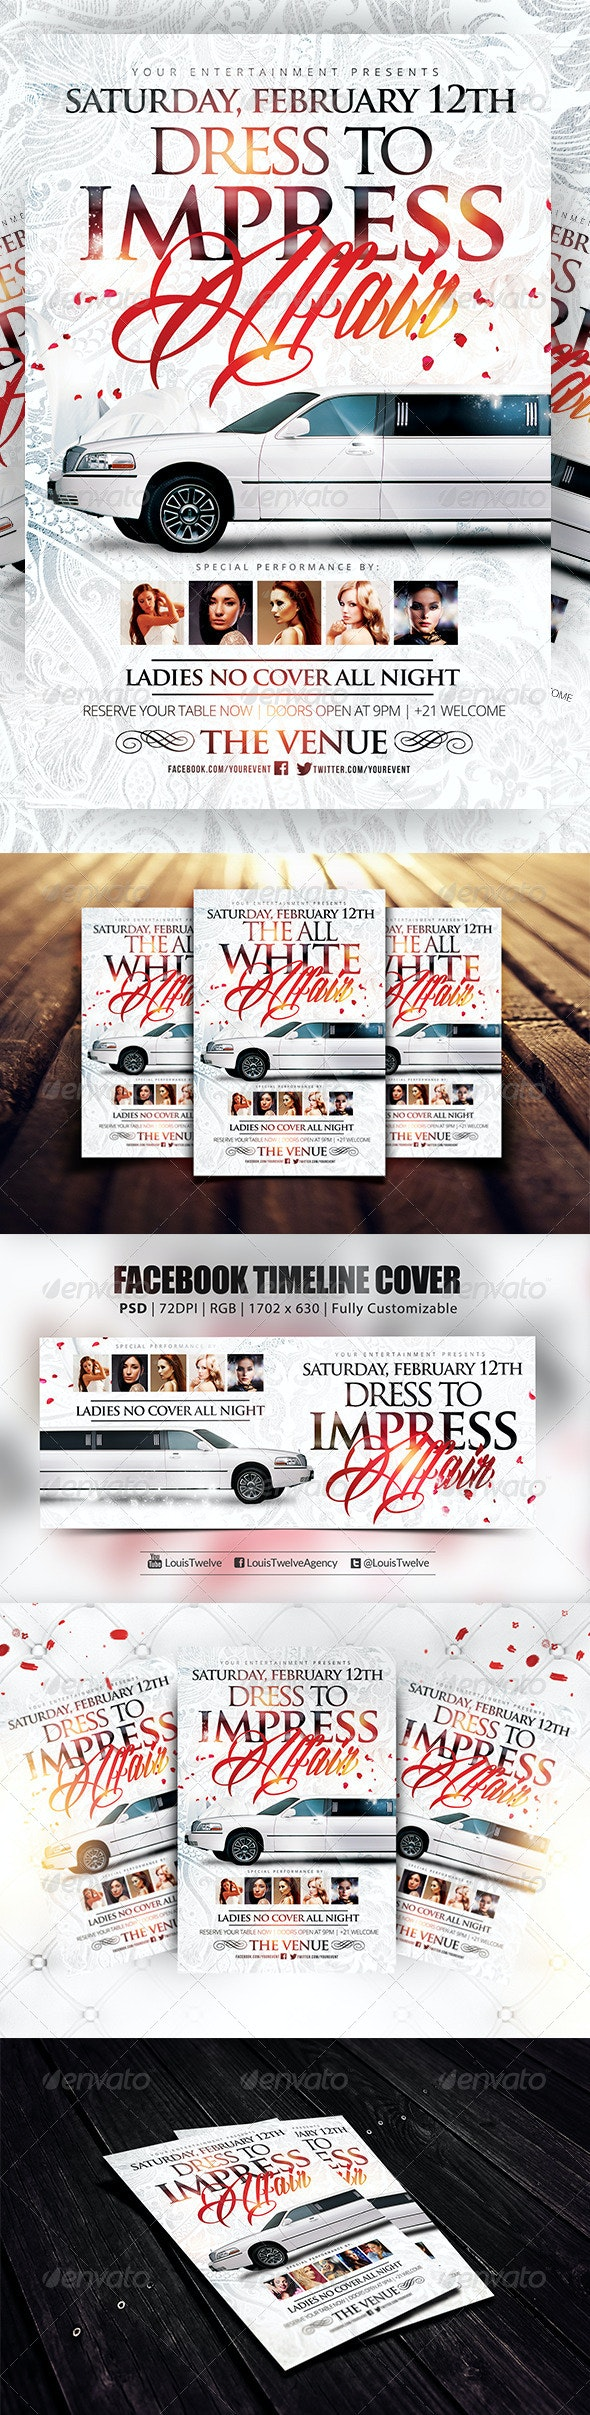 Dress to Impress White Affair | Flyer + FB Cover - Clubs & Parties Events